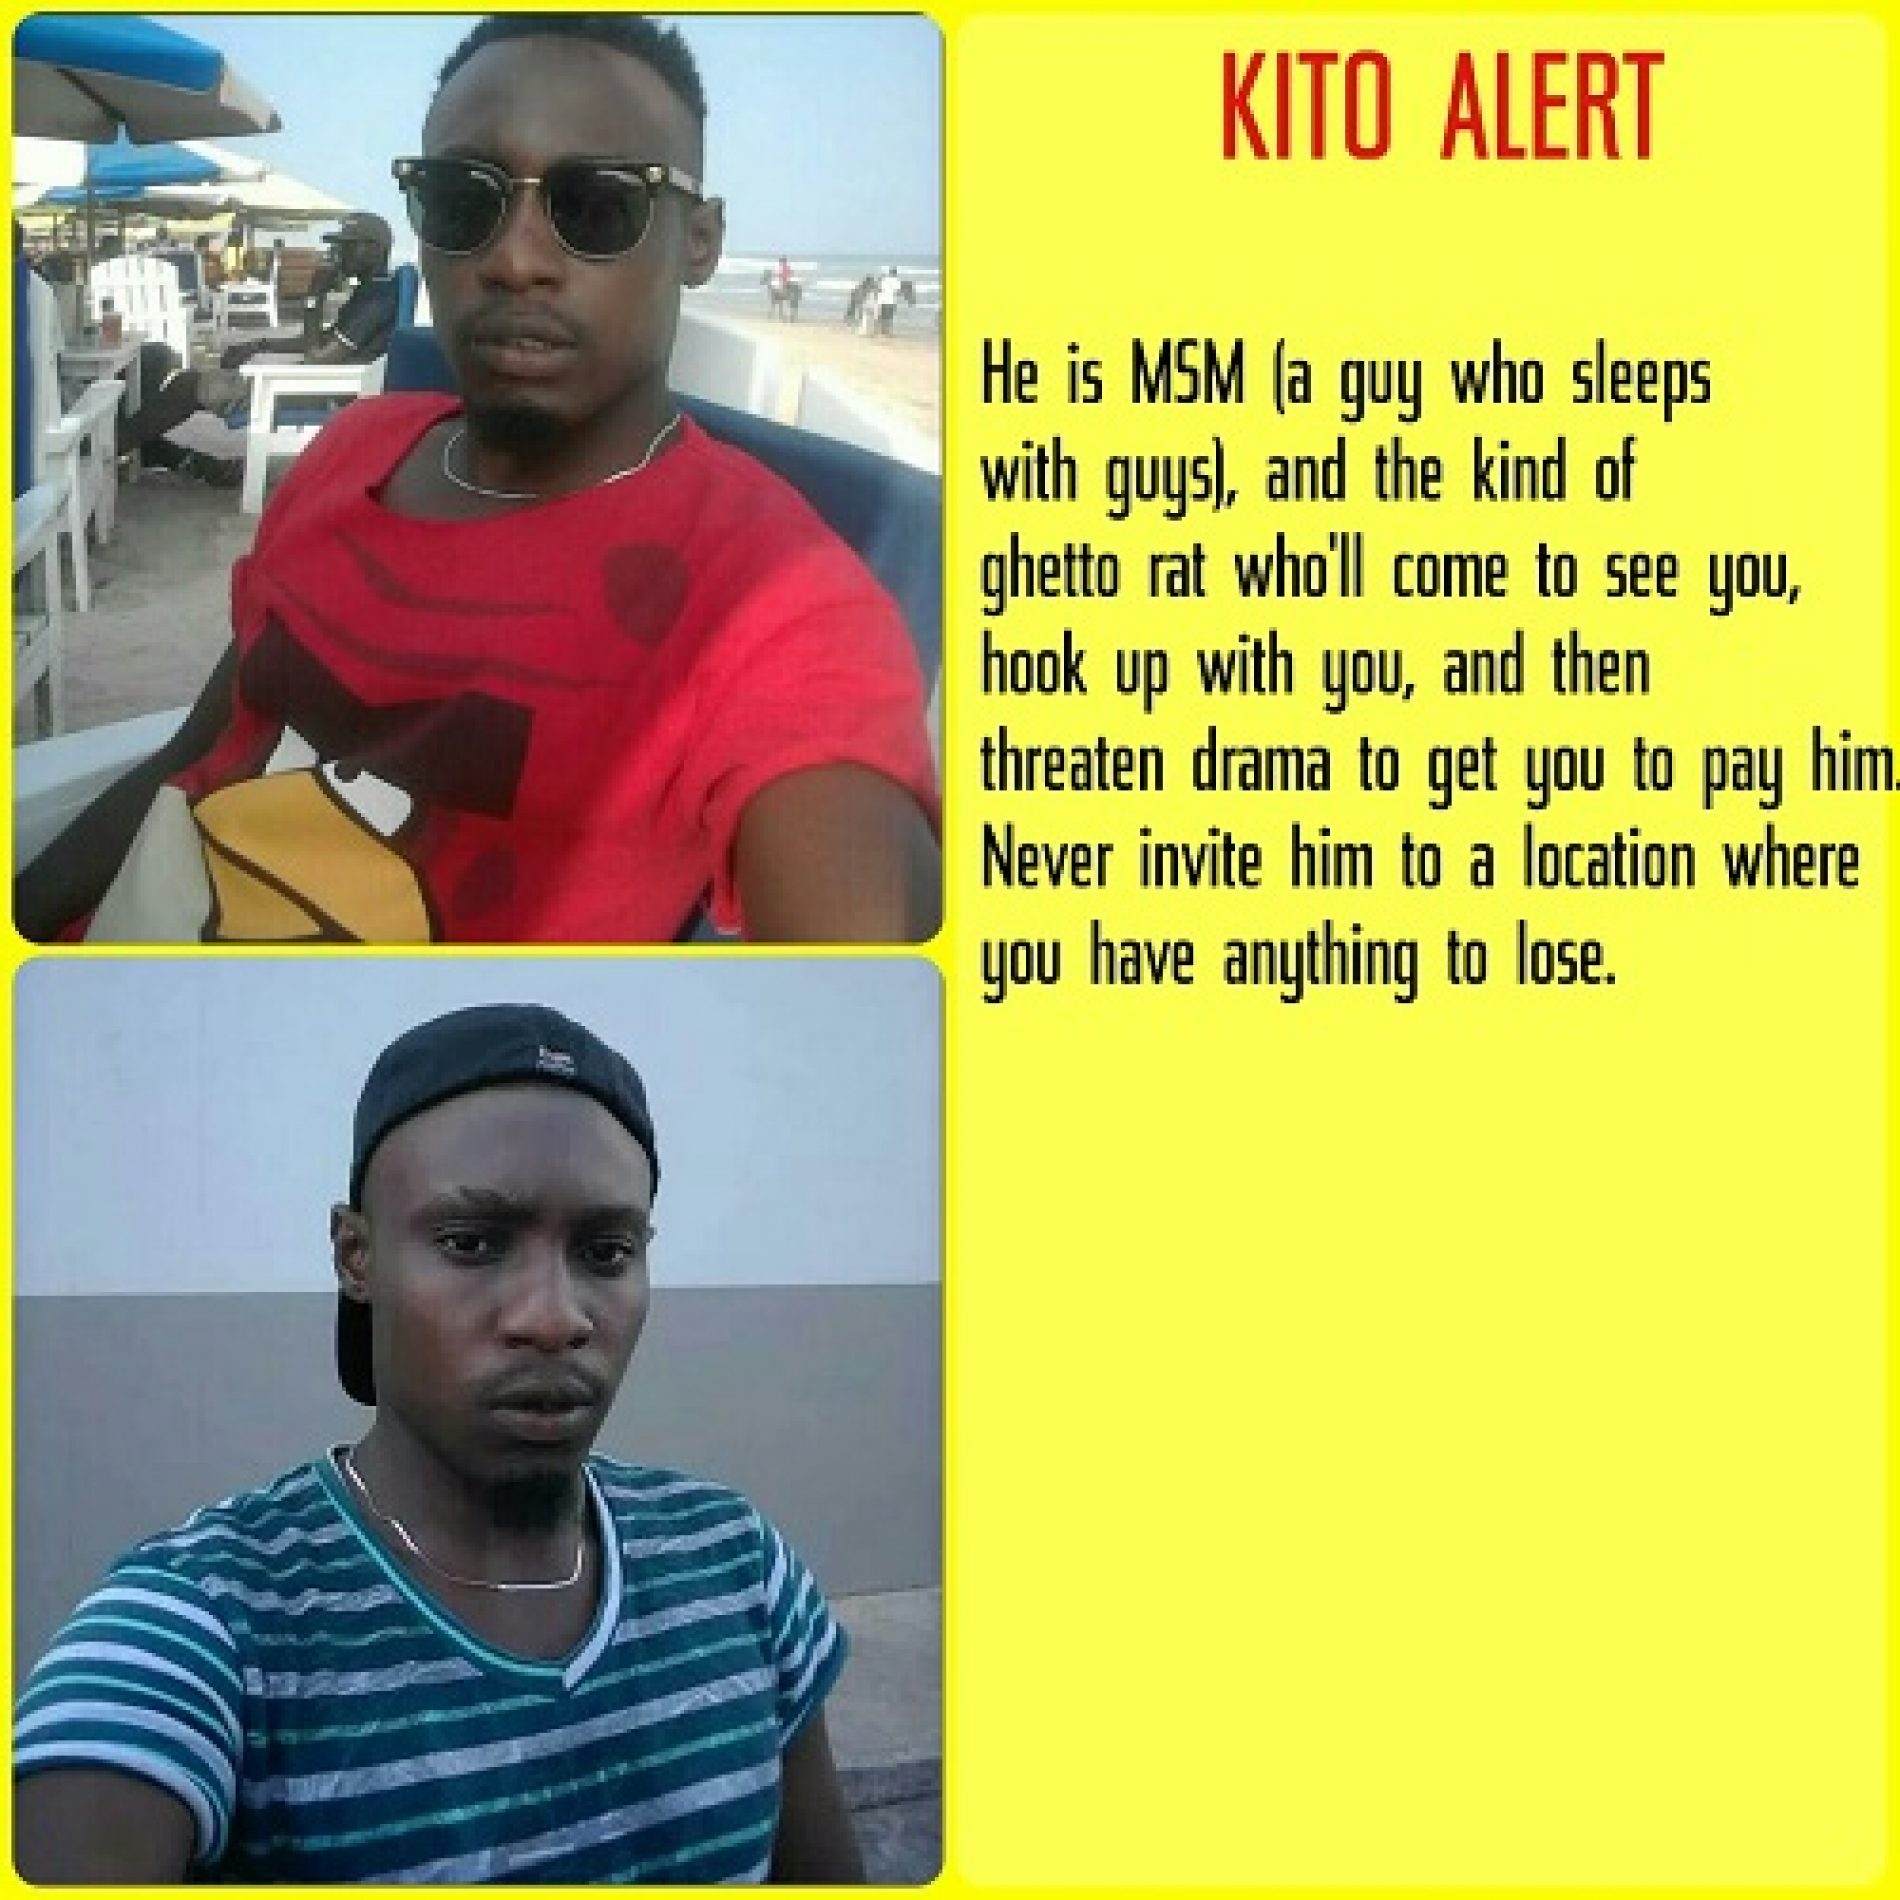 Kito Directory: A Rundown Of The Dangerous Faces So Far Exposed